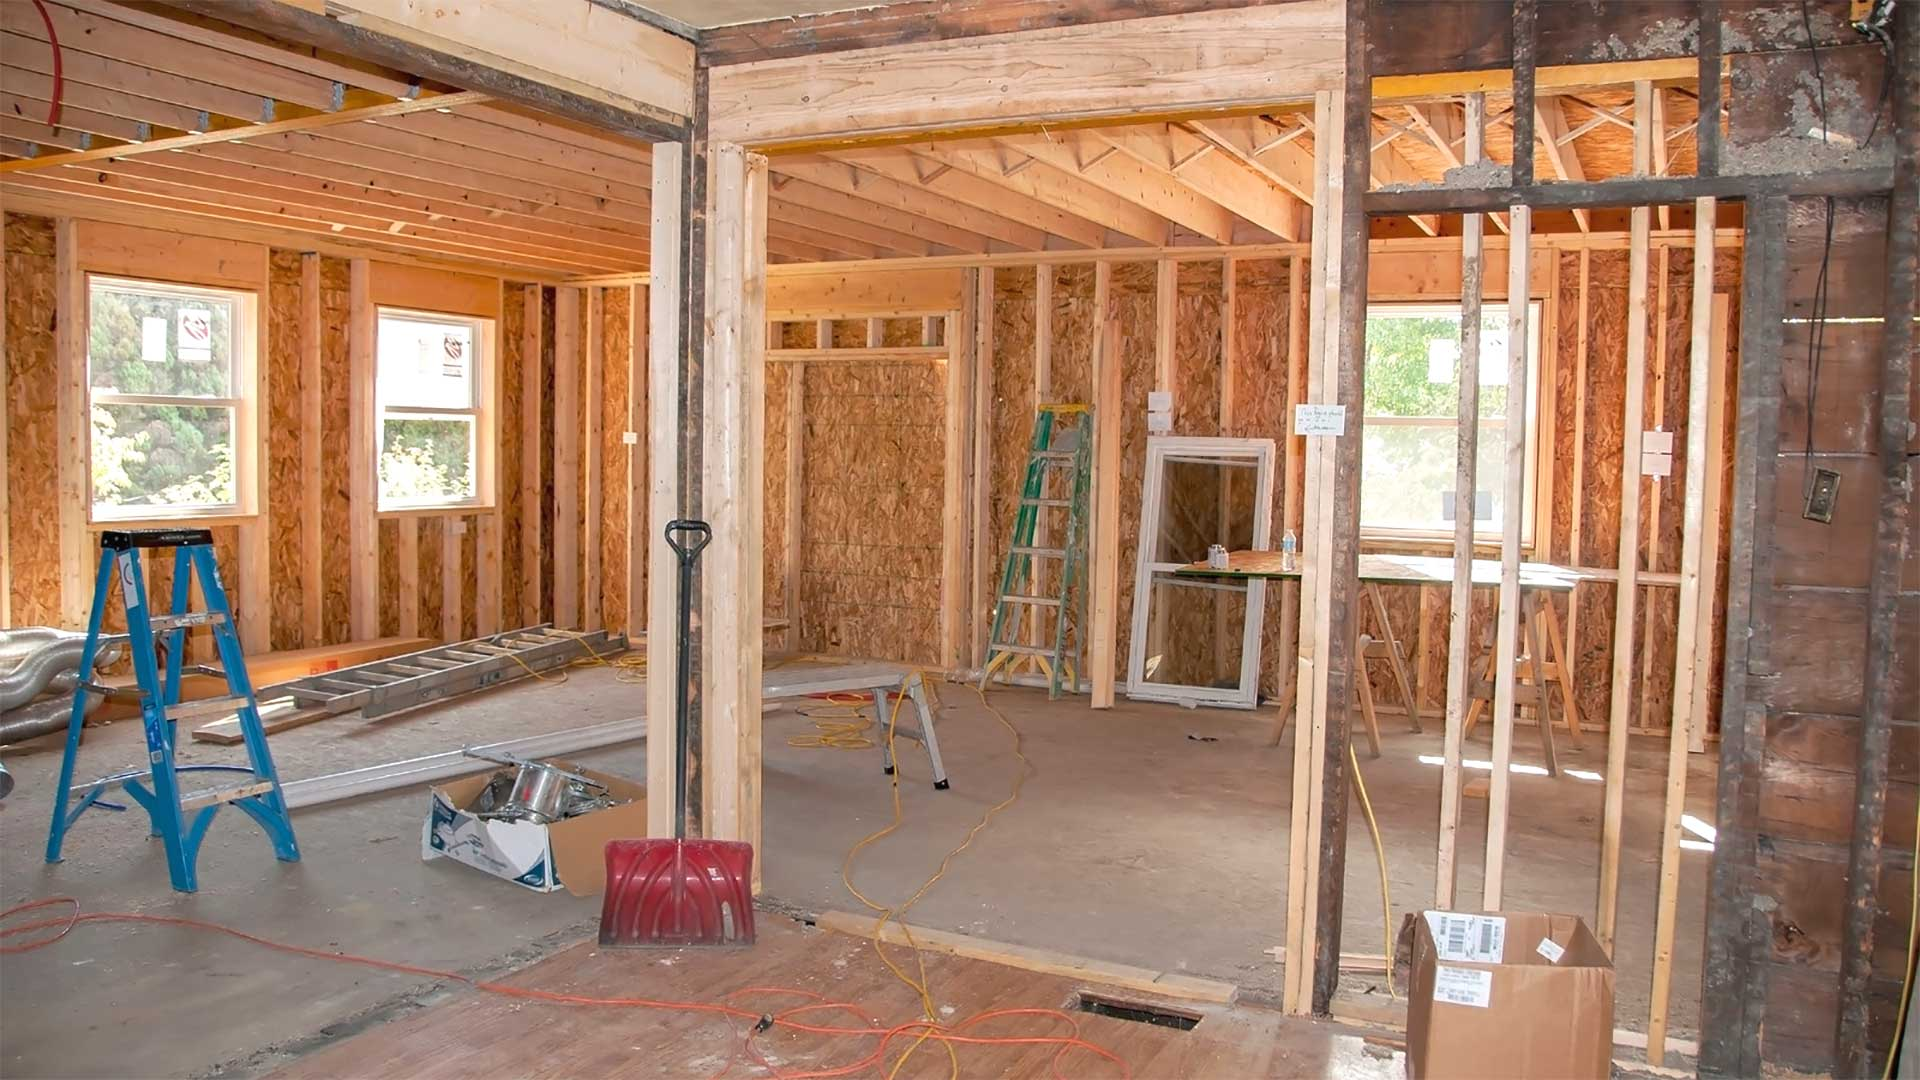 3 Green Alternatives for Your Next Home Renovation   Today&39;s Homeowner